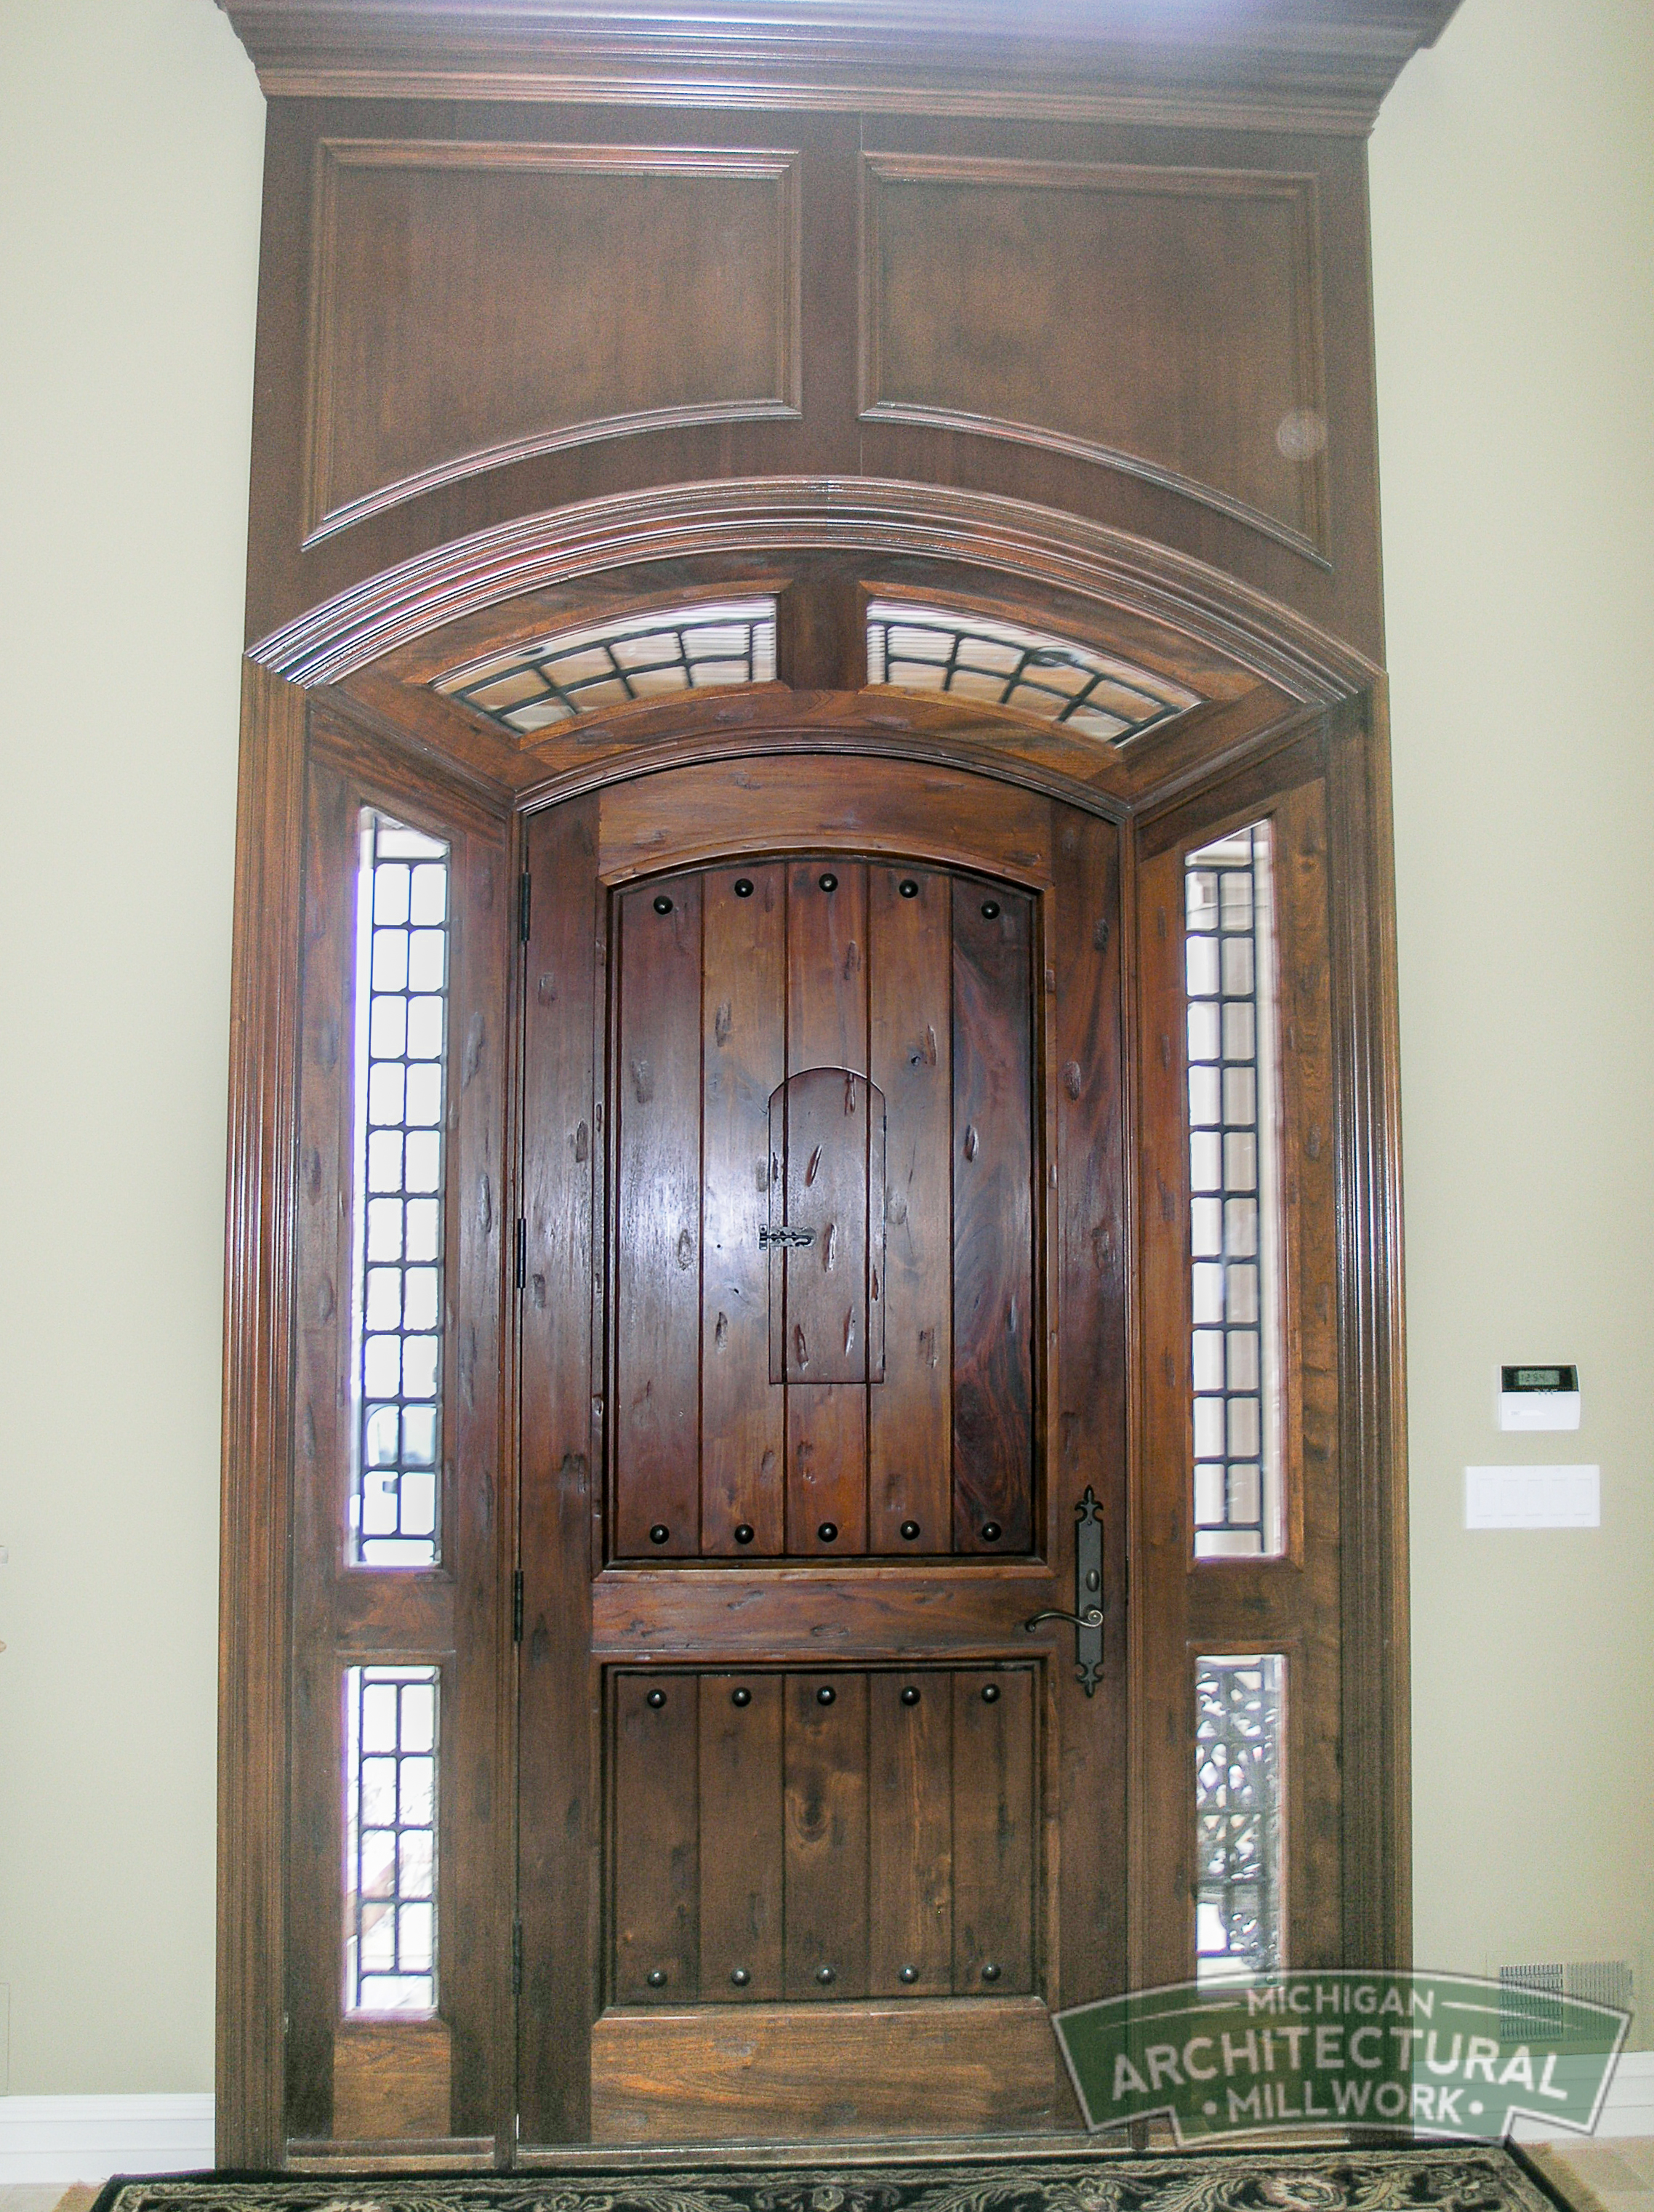 Michigan Architectural Millwork- Moulding and Millwork Photo-223.jpg